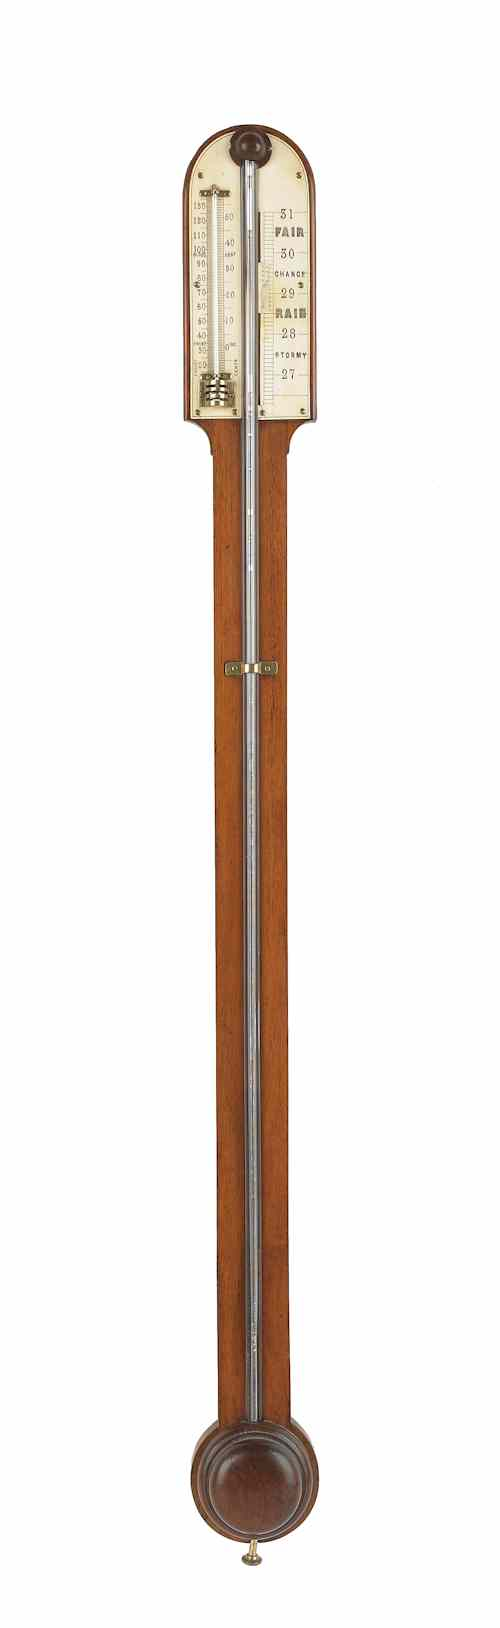 English mahogany stick barometer mid 19th